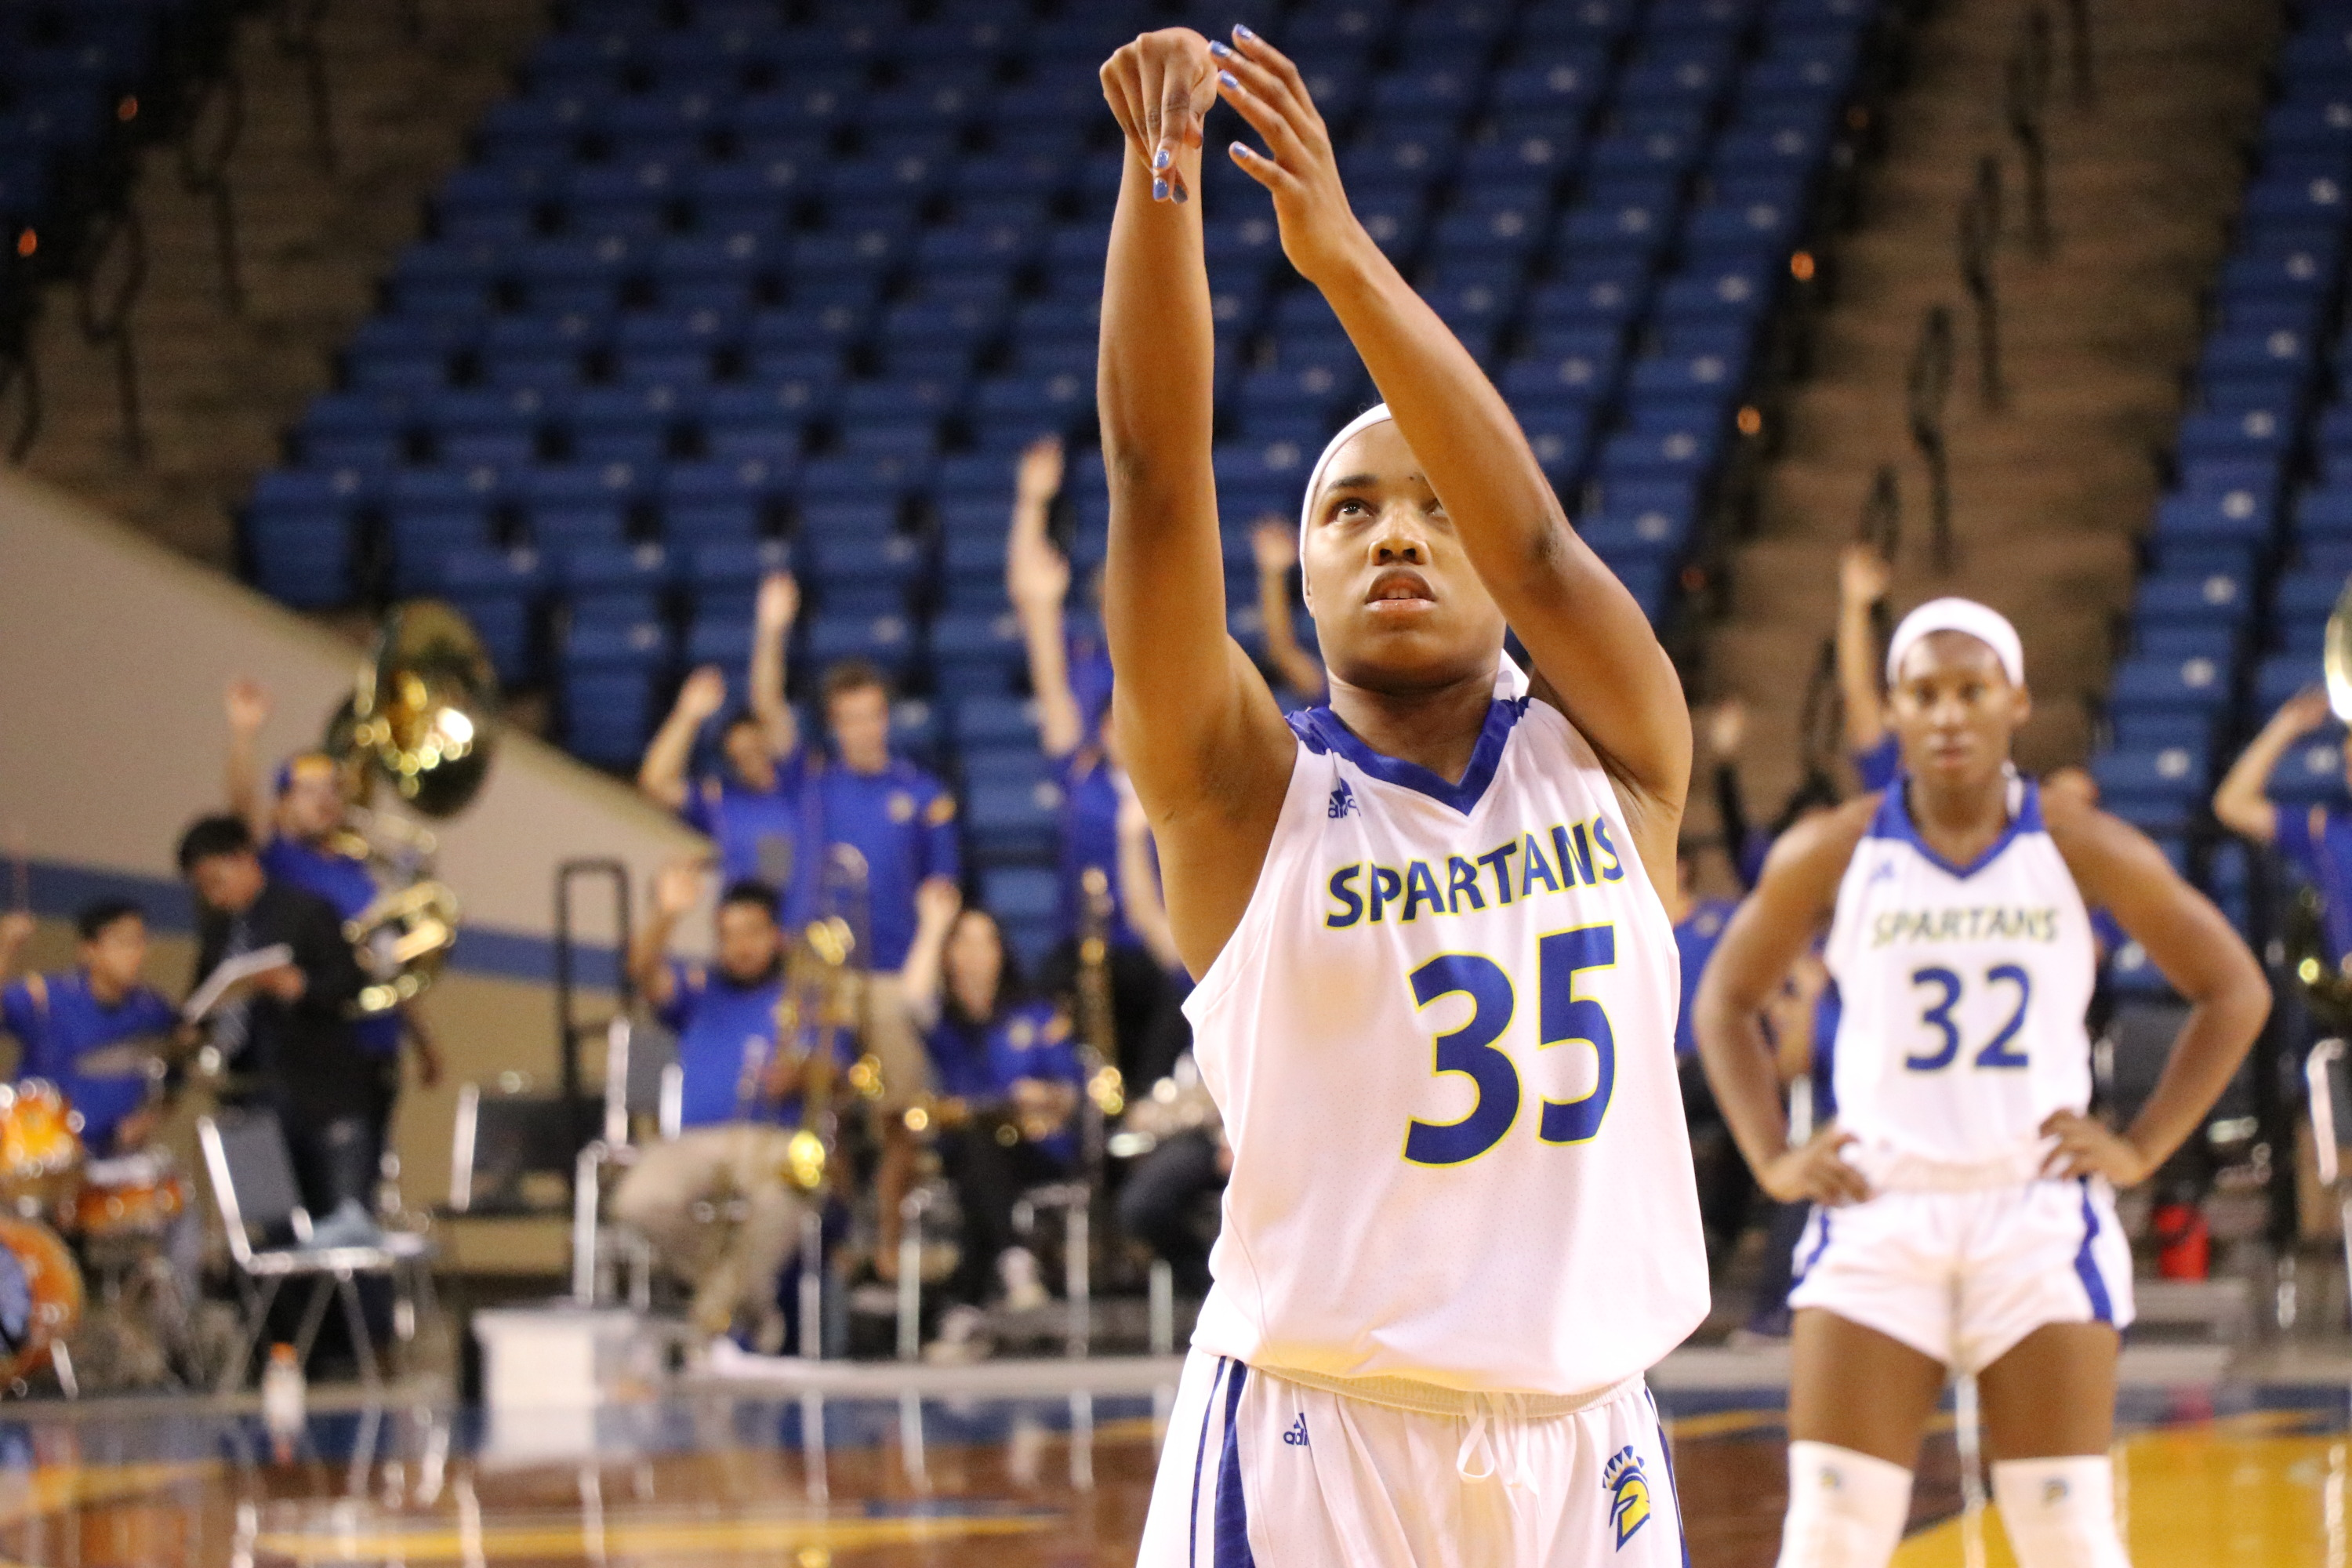 Cydni Lewis had six rebounds and five points in her Spartans debut